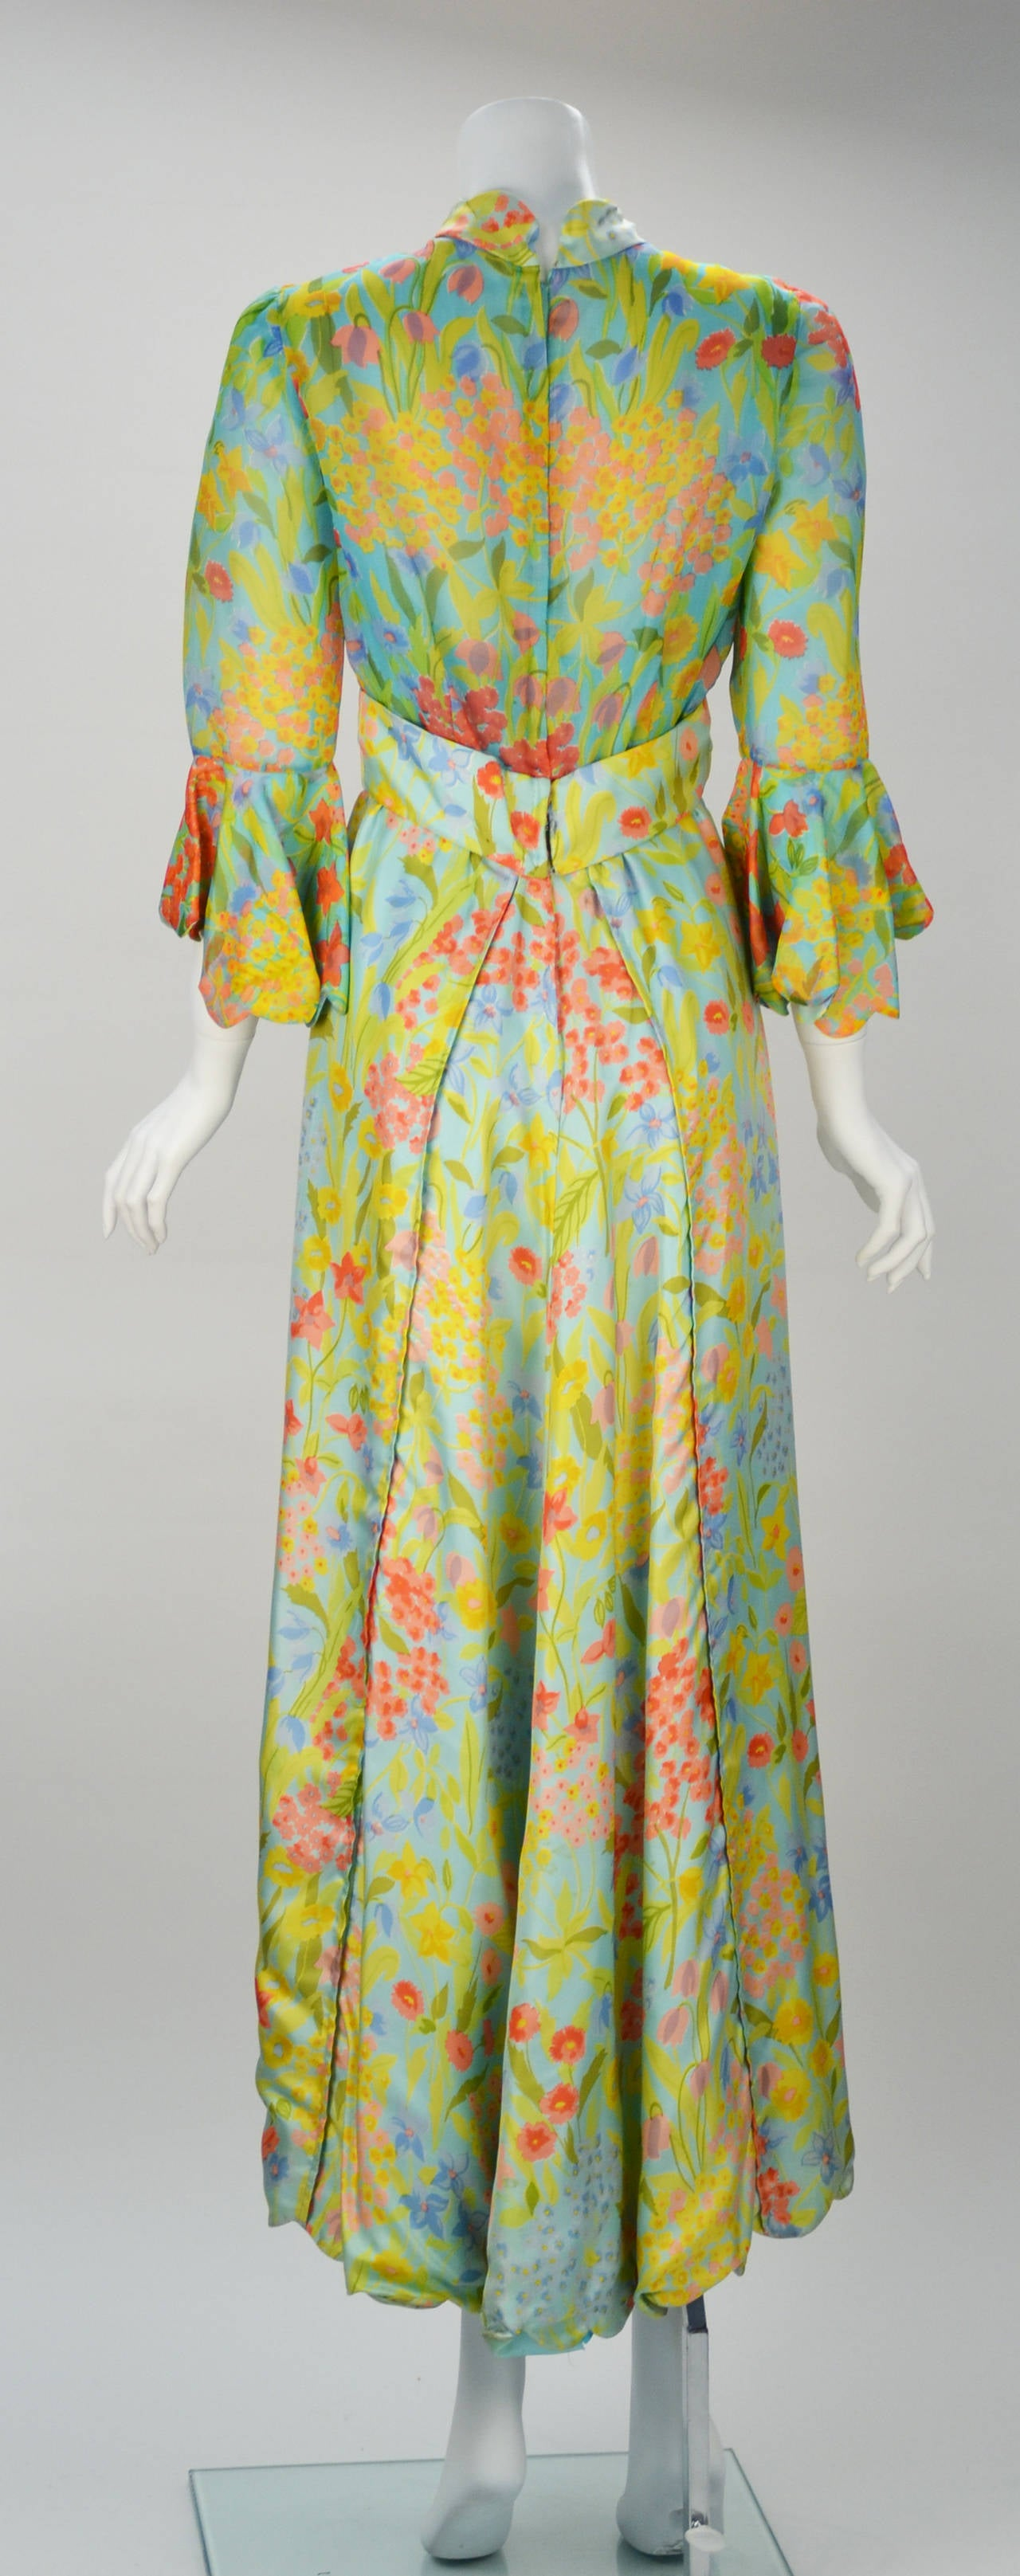 Tina Leser became famous for her international style. After graduating from art school she married and moved to Honolulu. This dress is definitely inspired by Hawaii with its floral print on sheer fabric and silky twill, possibly a Boussac Designer